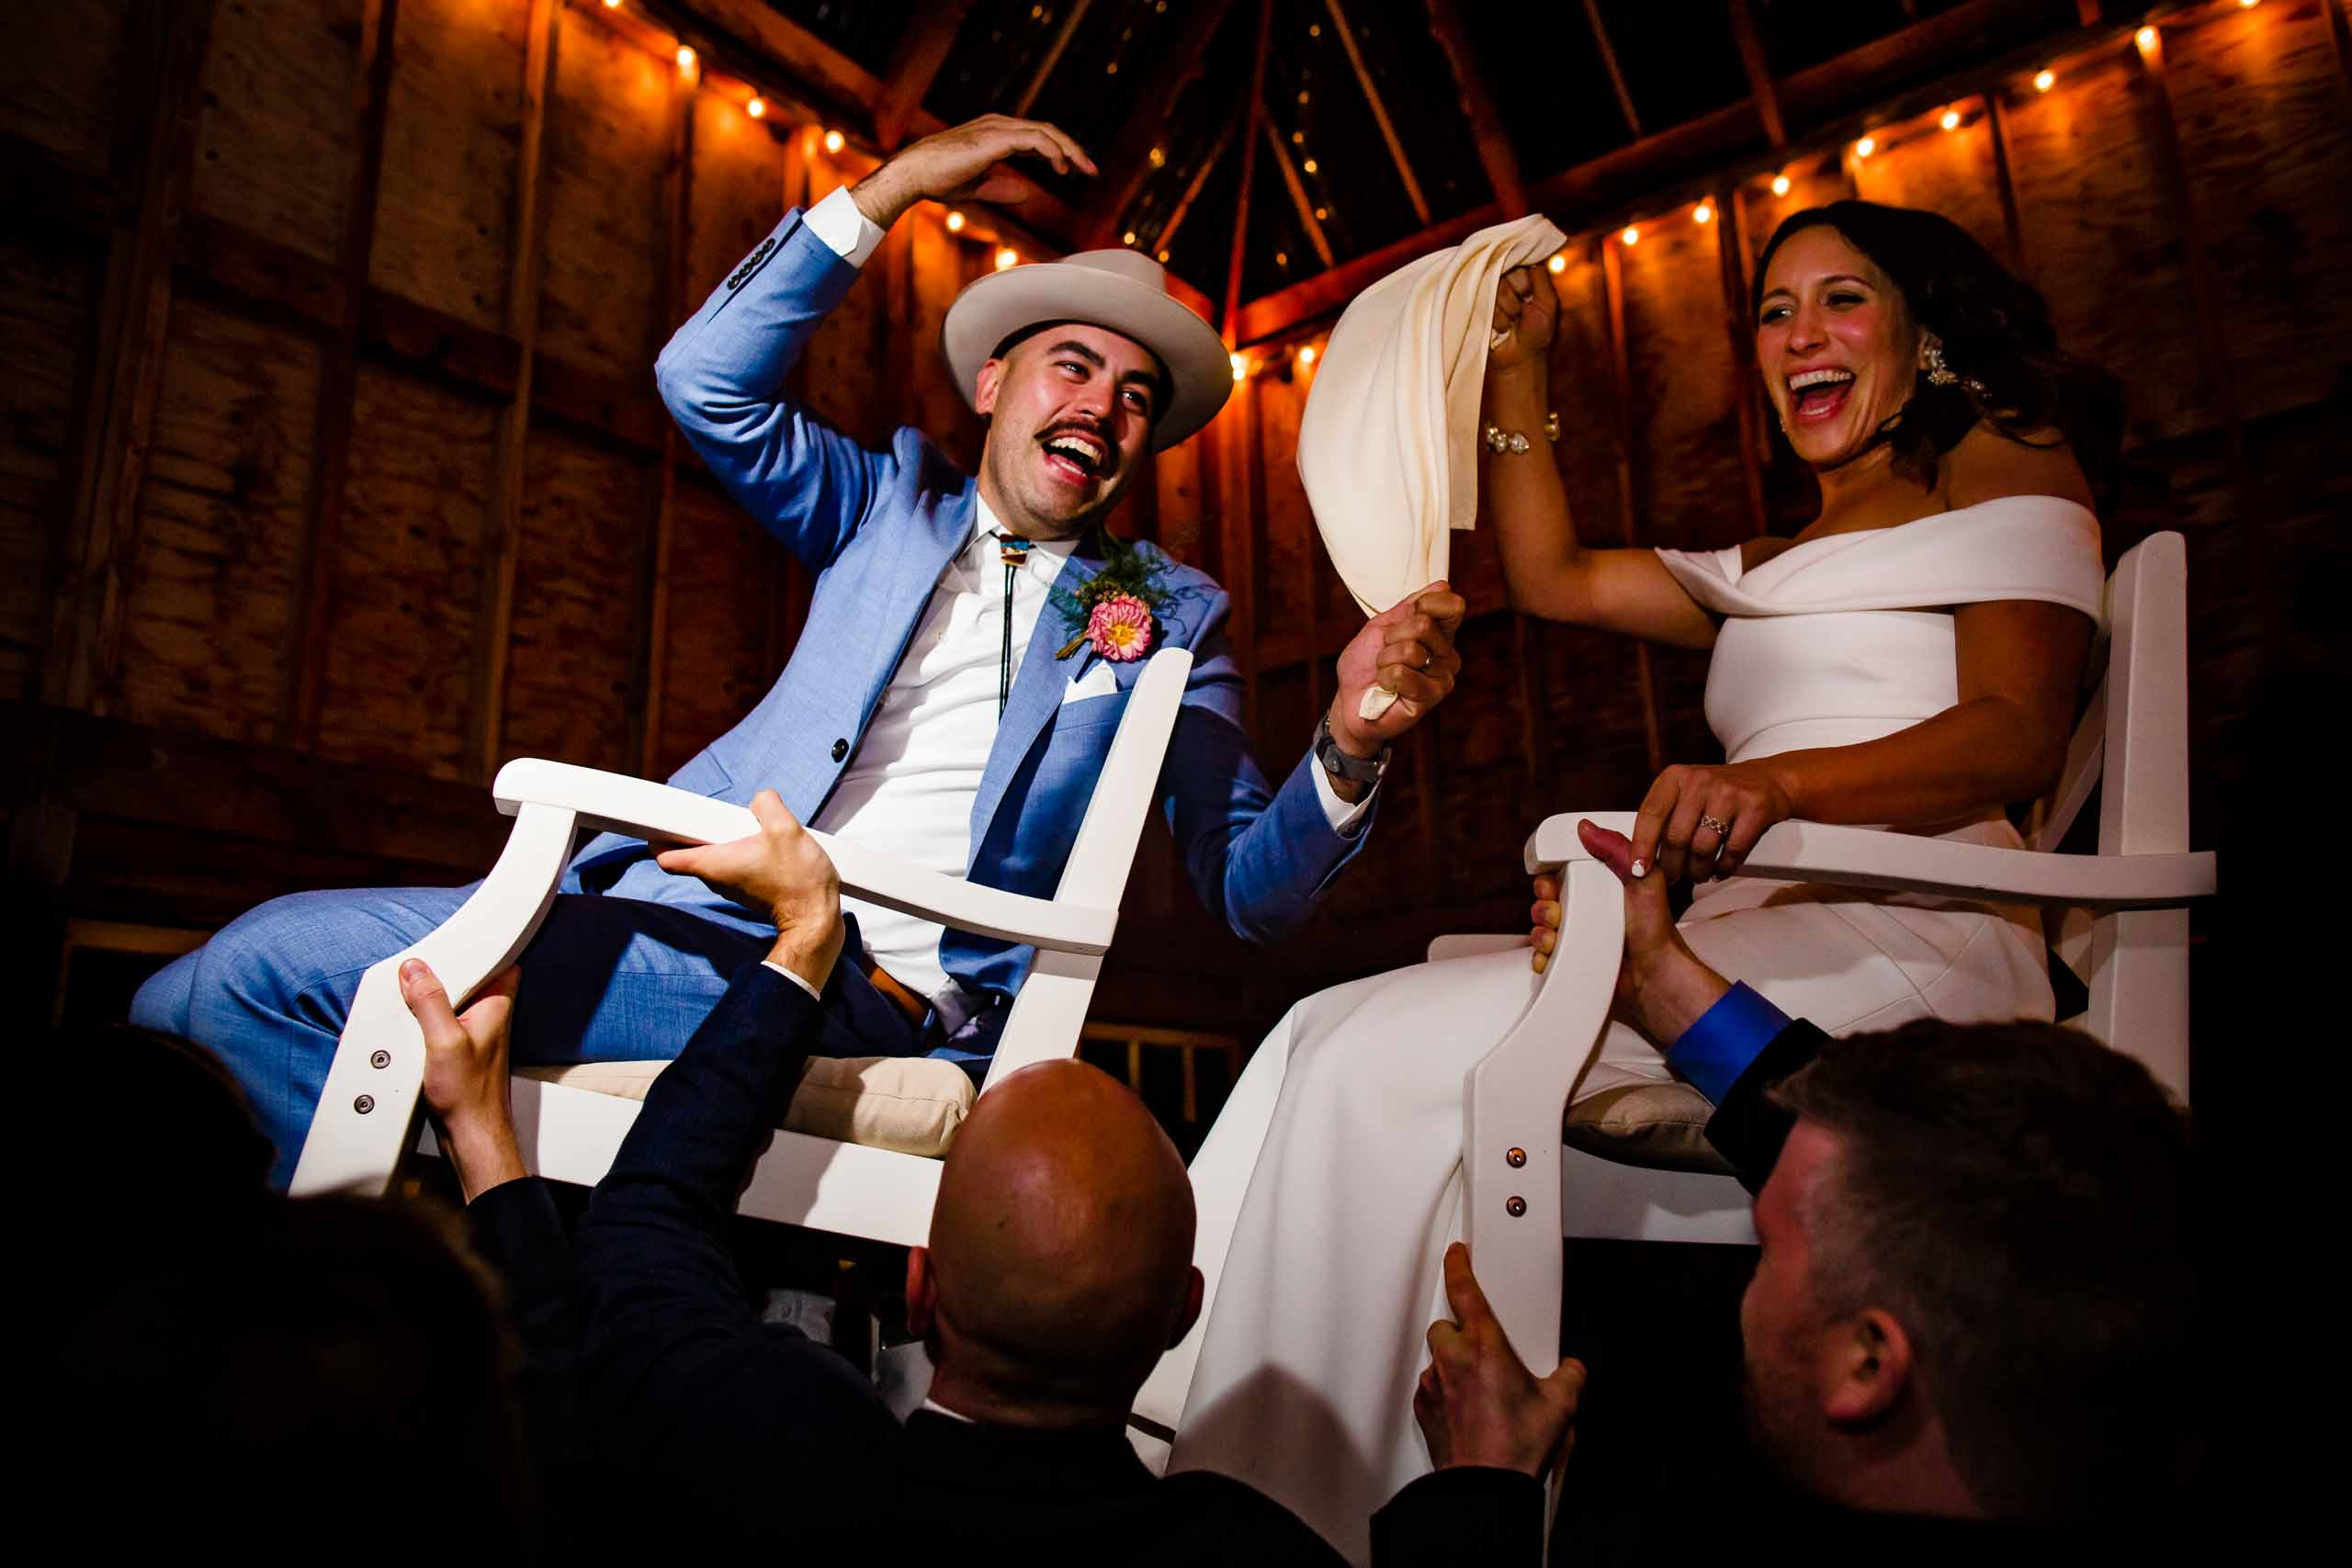 Groom and bride being carried by friends on a chair during his Mt Hood Organic Farms wedding reception